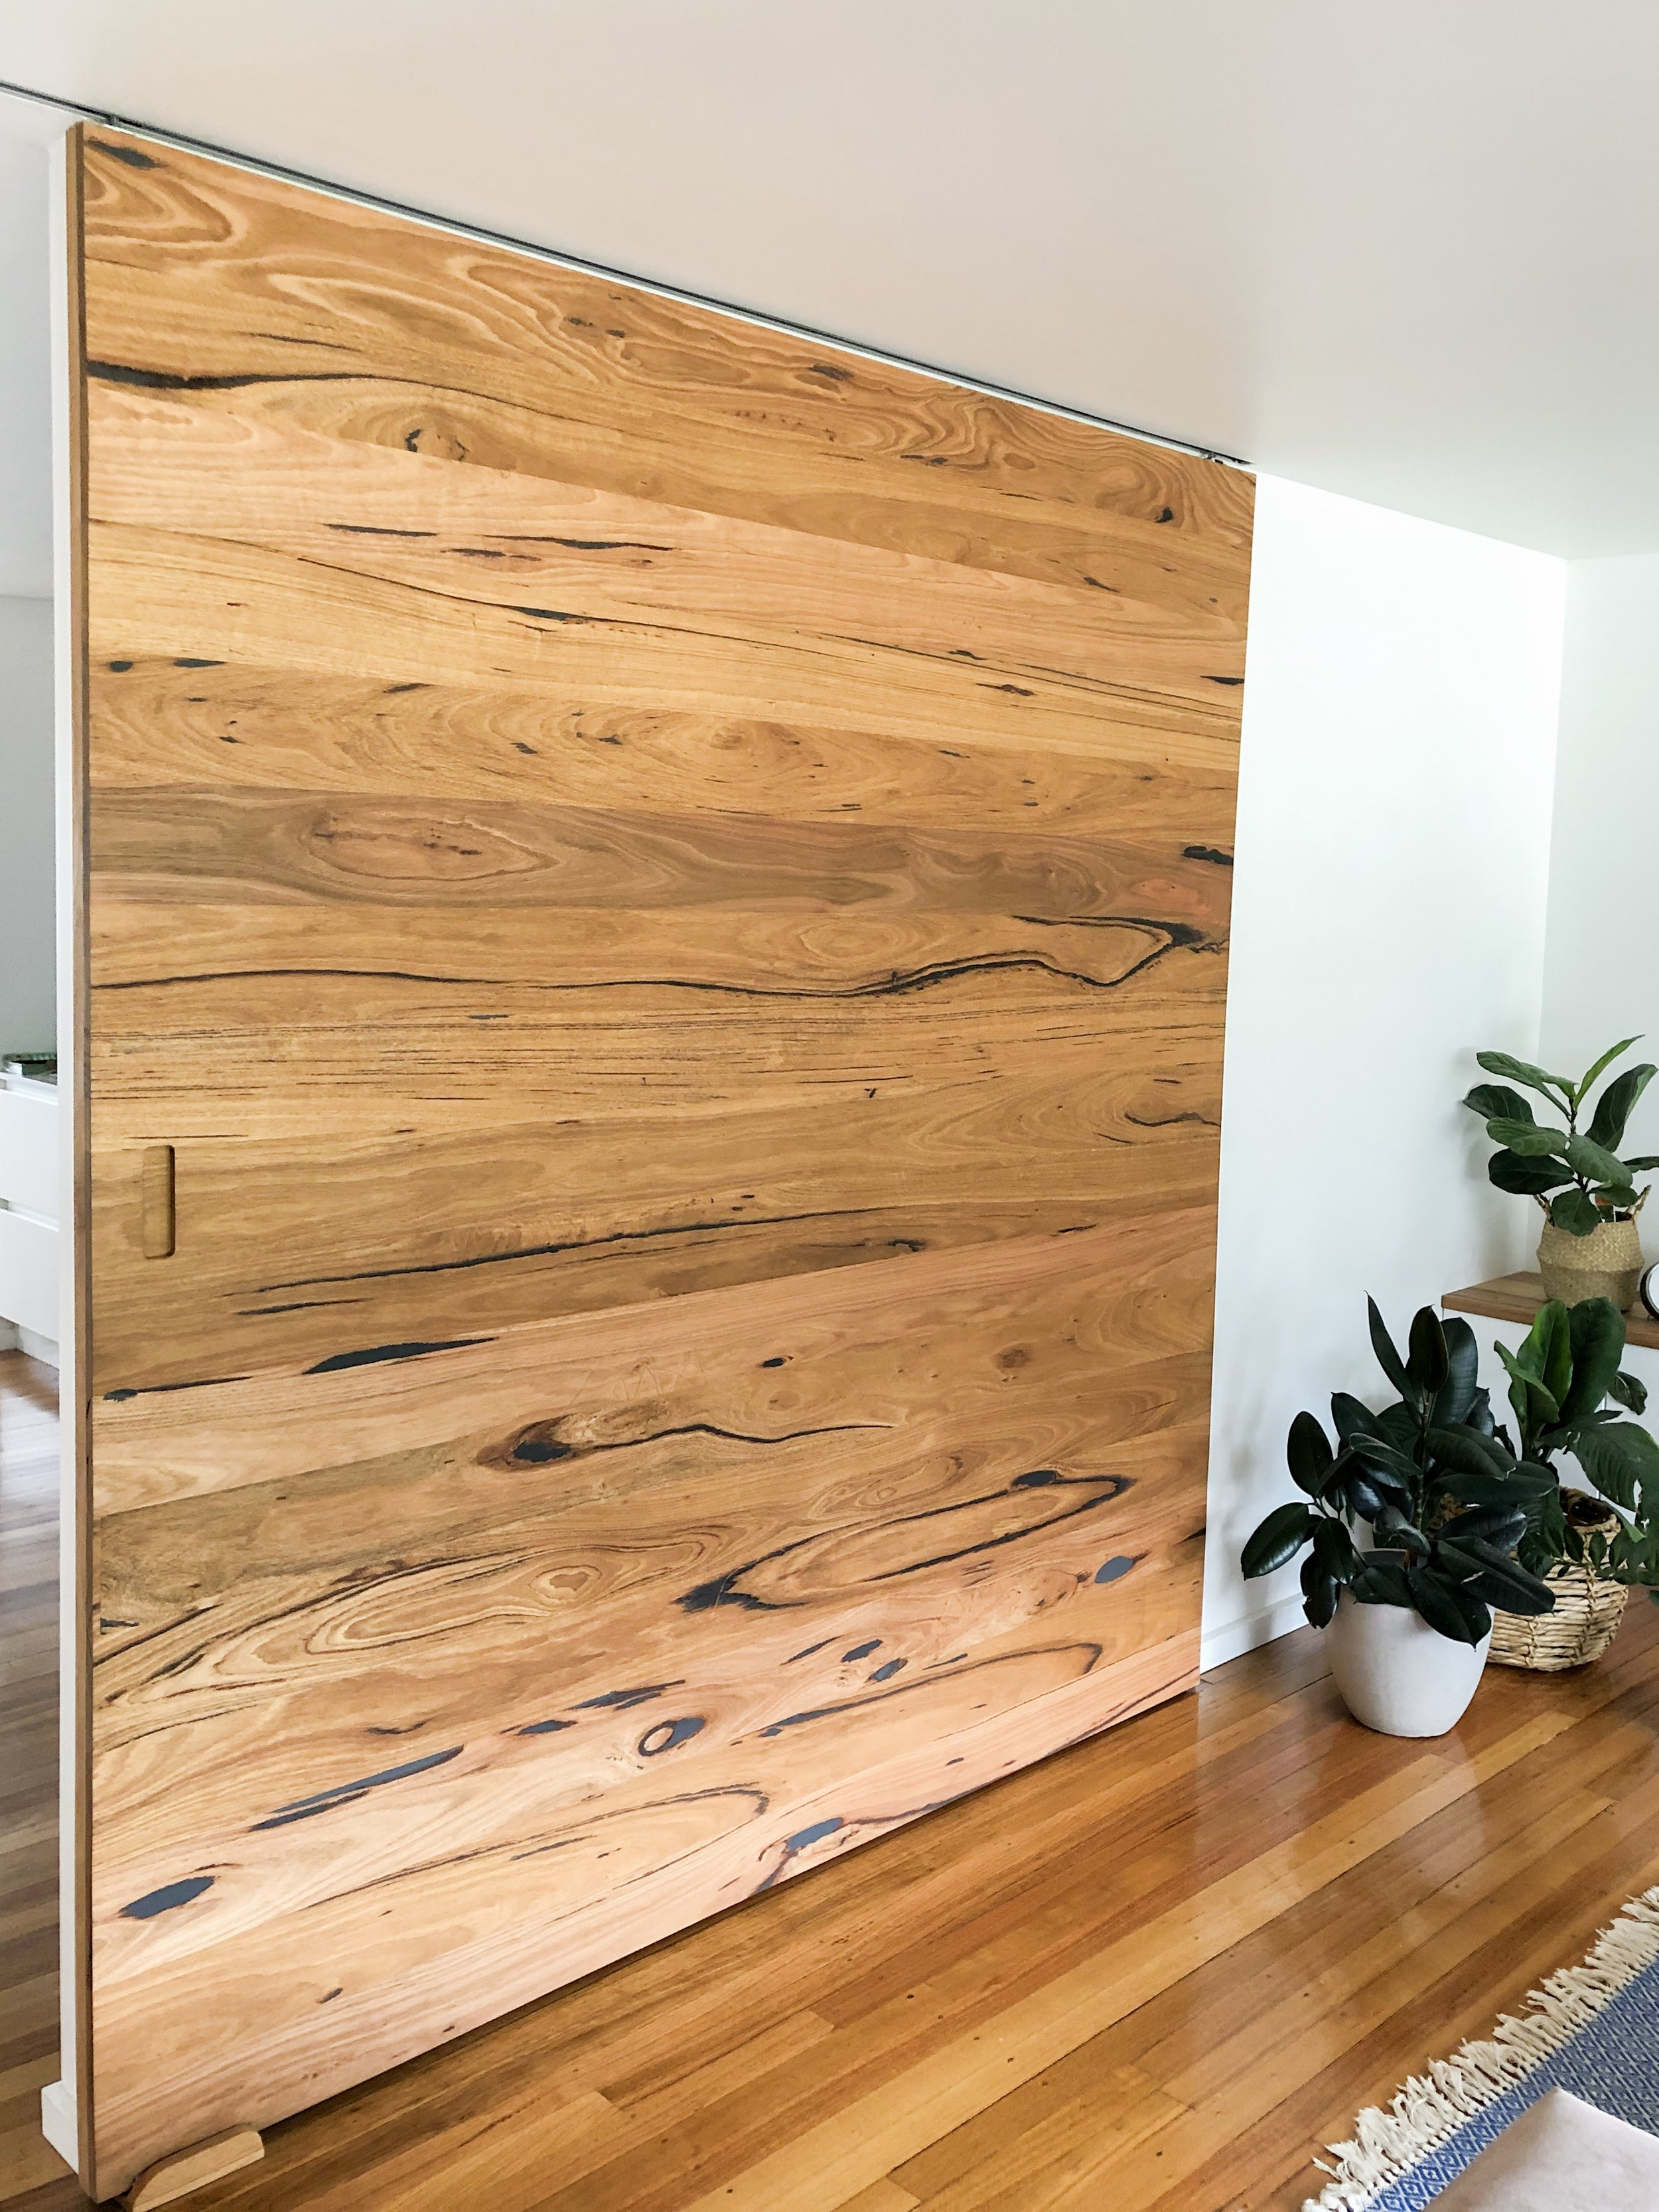 Recycled Messmate barn door